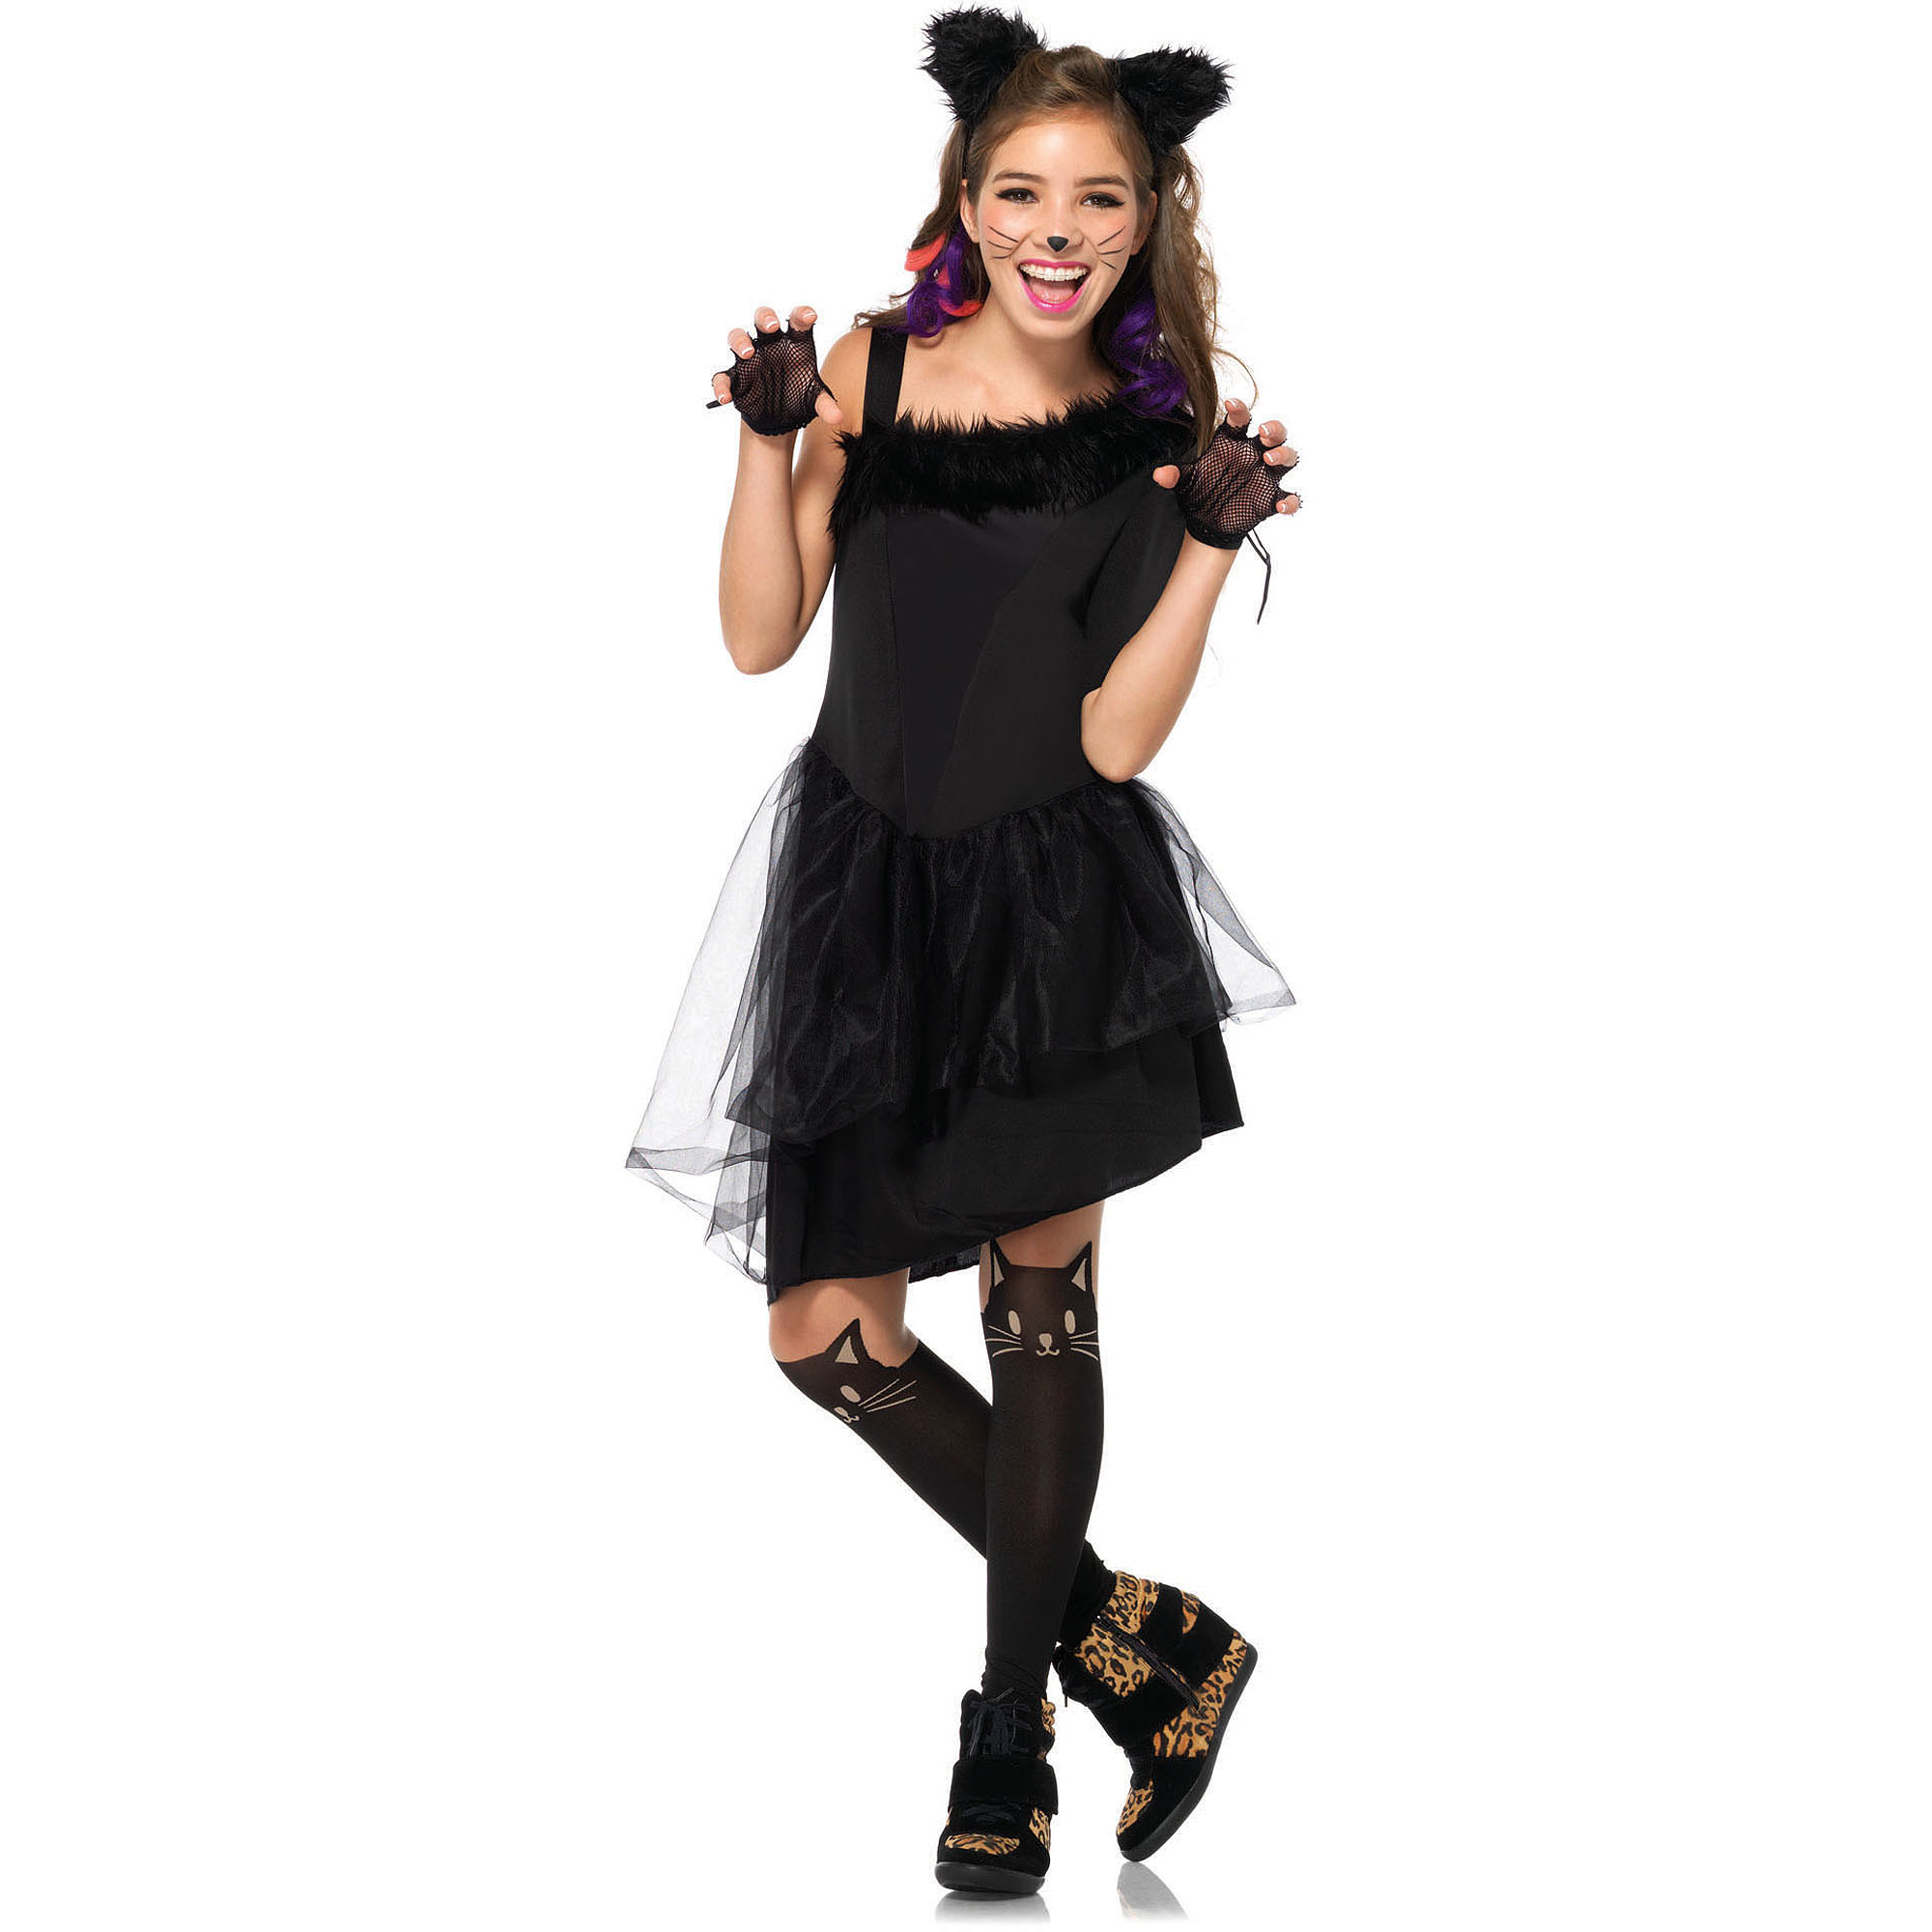 Has come kitty teen models